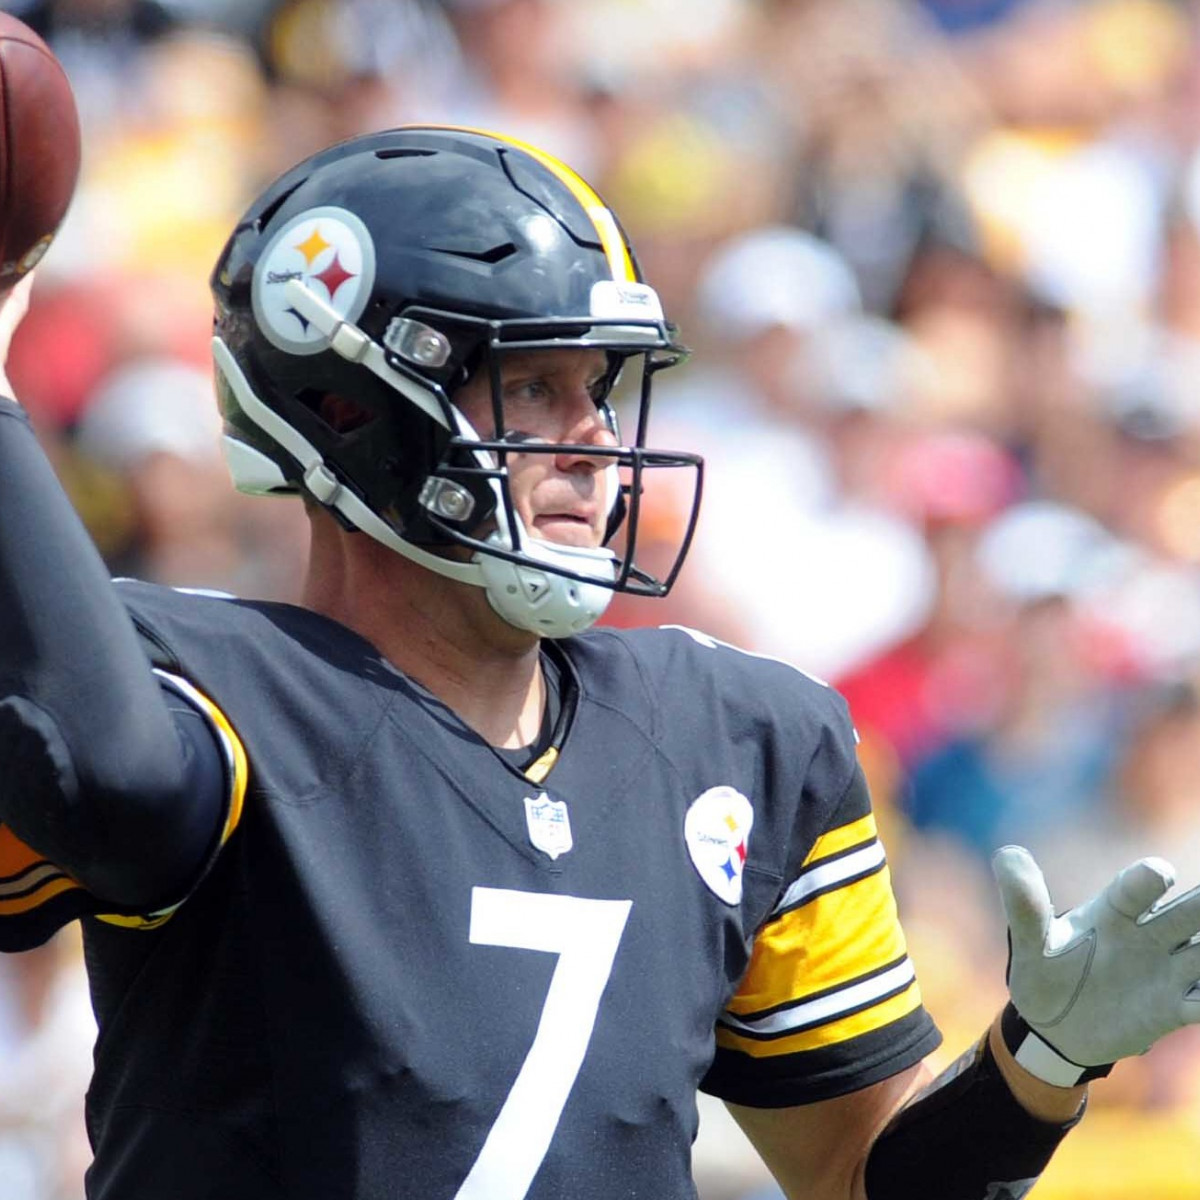 Tampa Bay Buccaneers vs. Pittsburgh Steelers: Live Updates, Score and Highlights for Monday Night Football